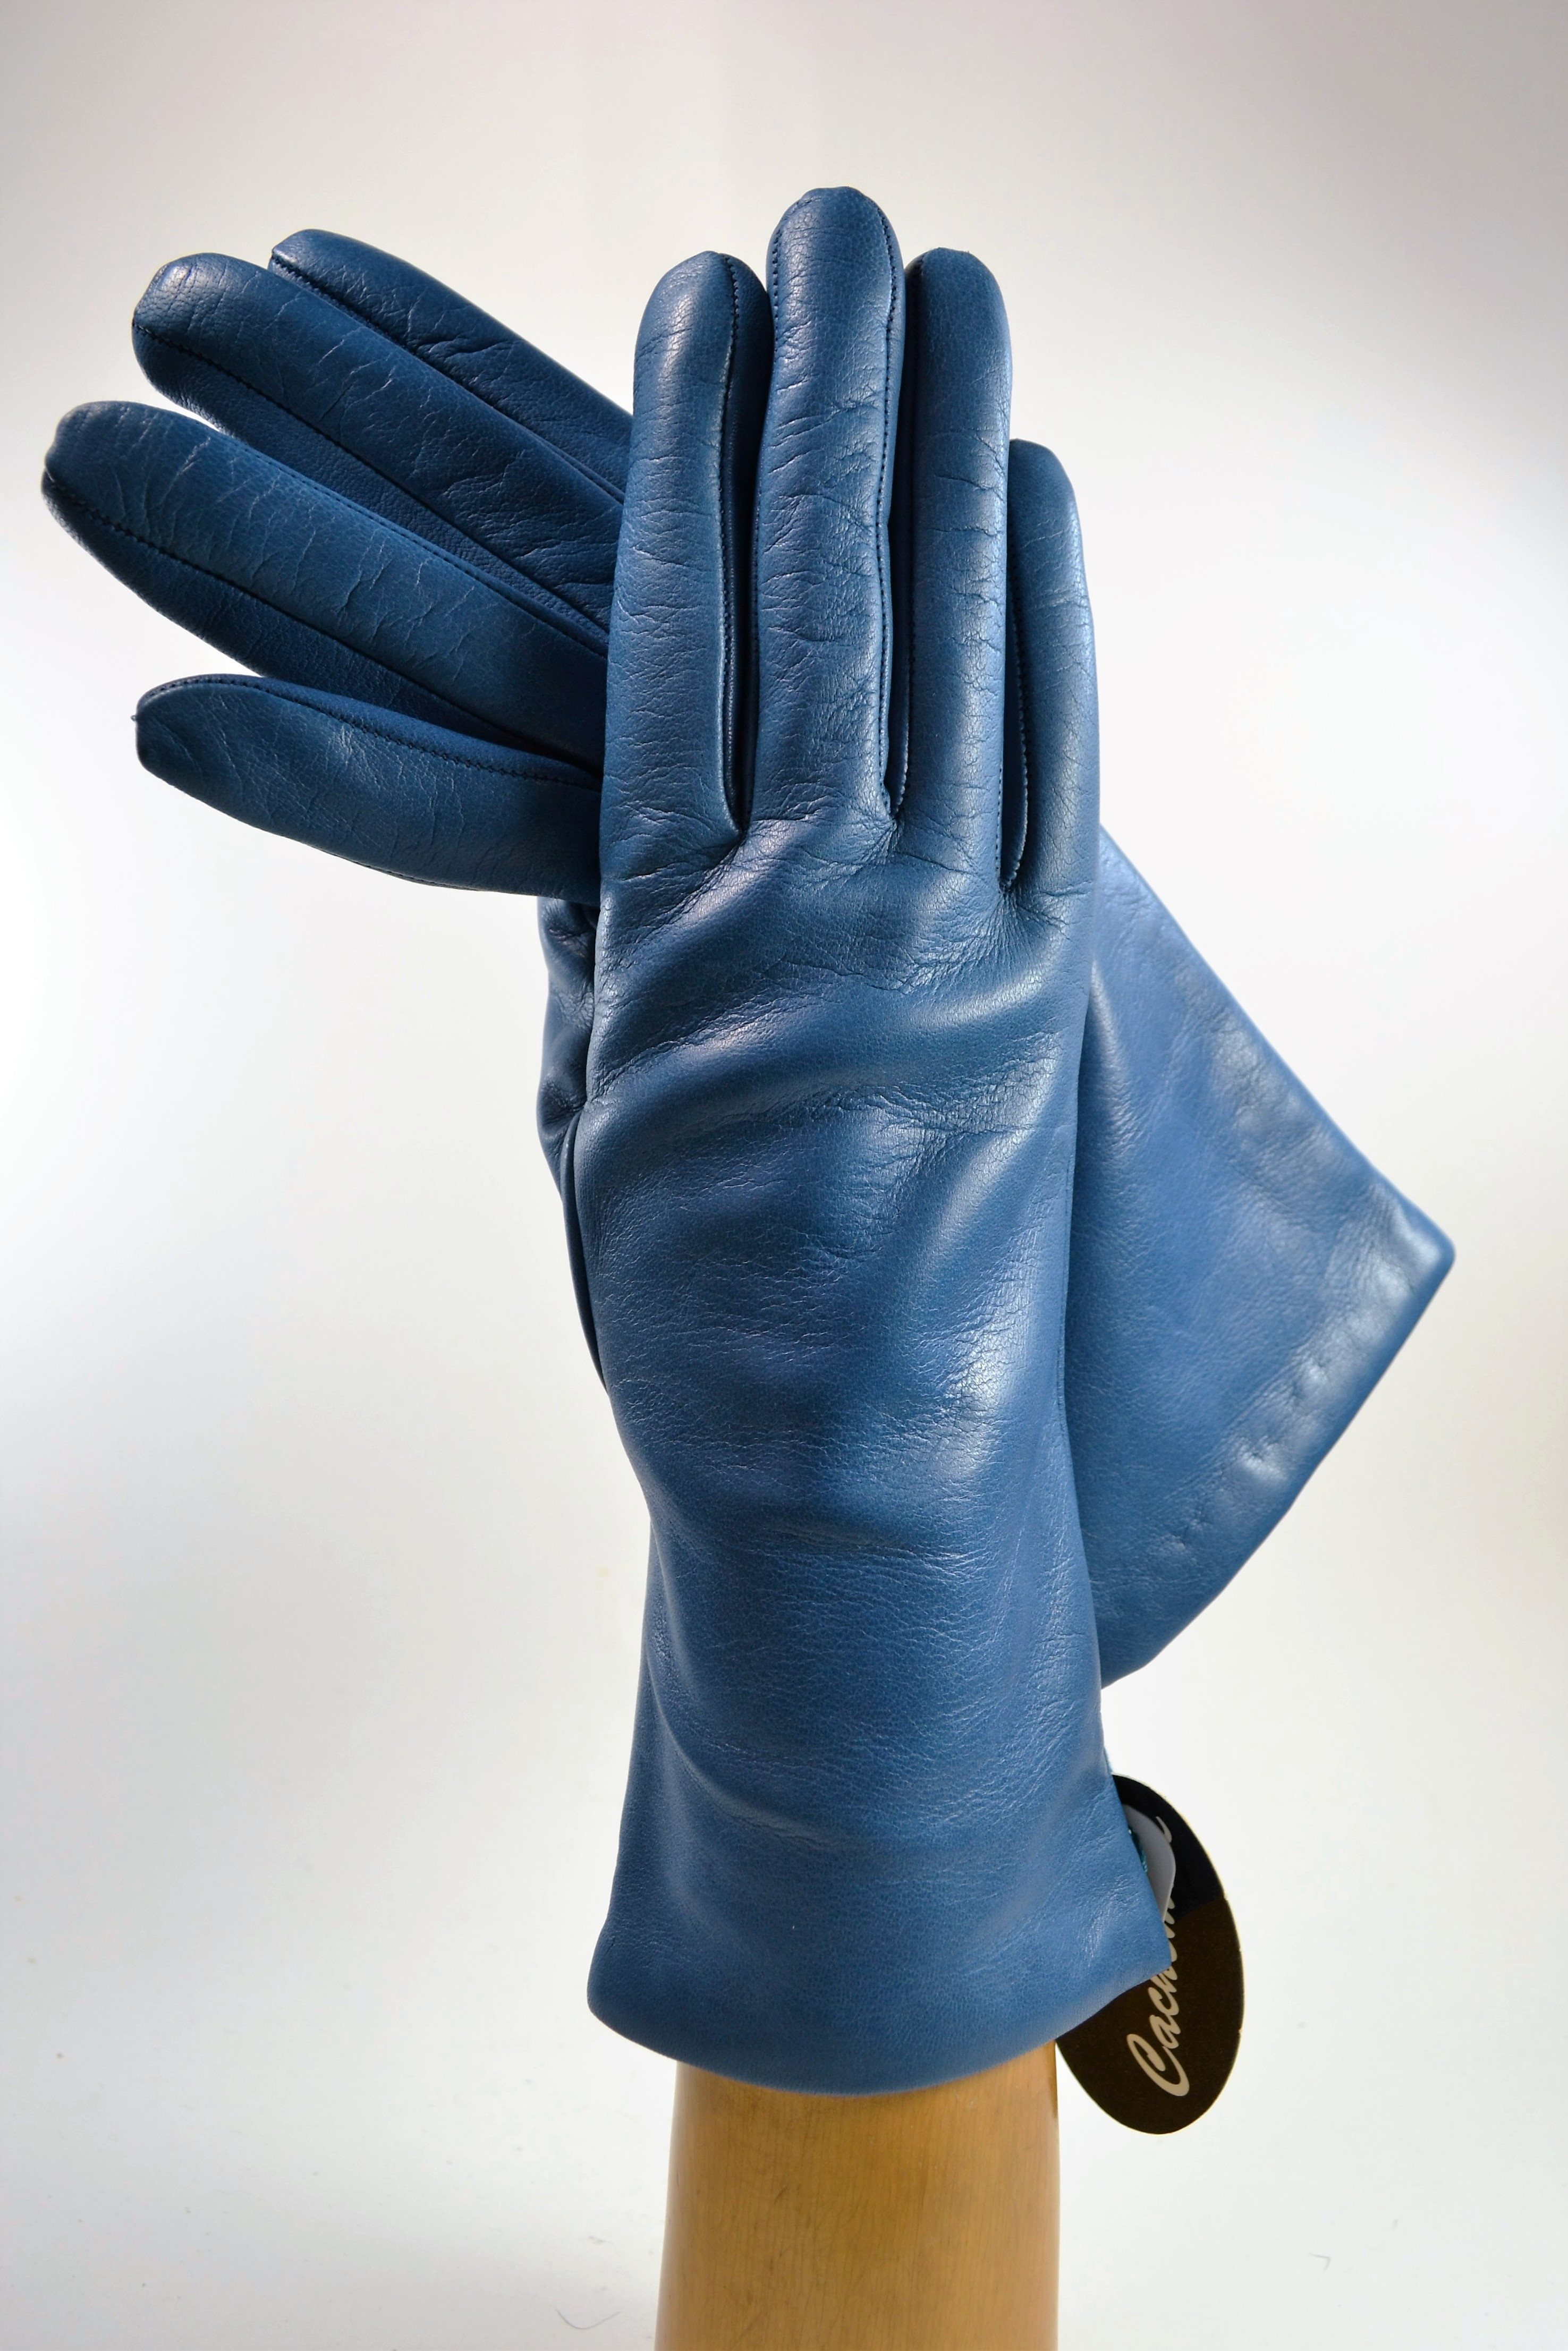 "ladies nappa gloves 3"", cashmere lined, light blue"